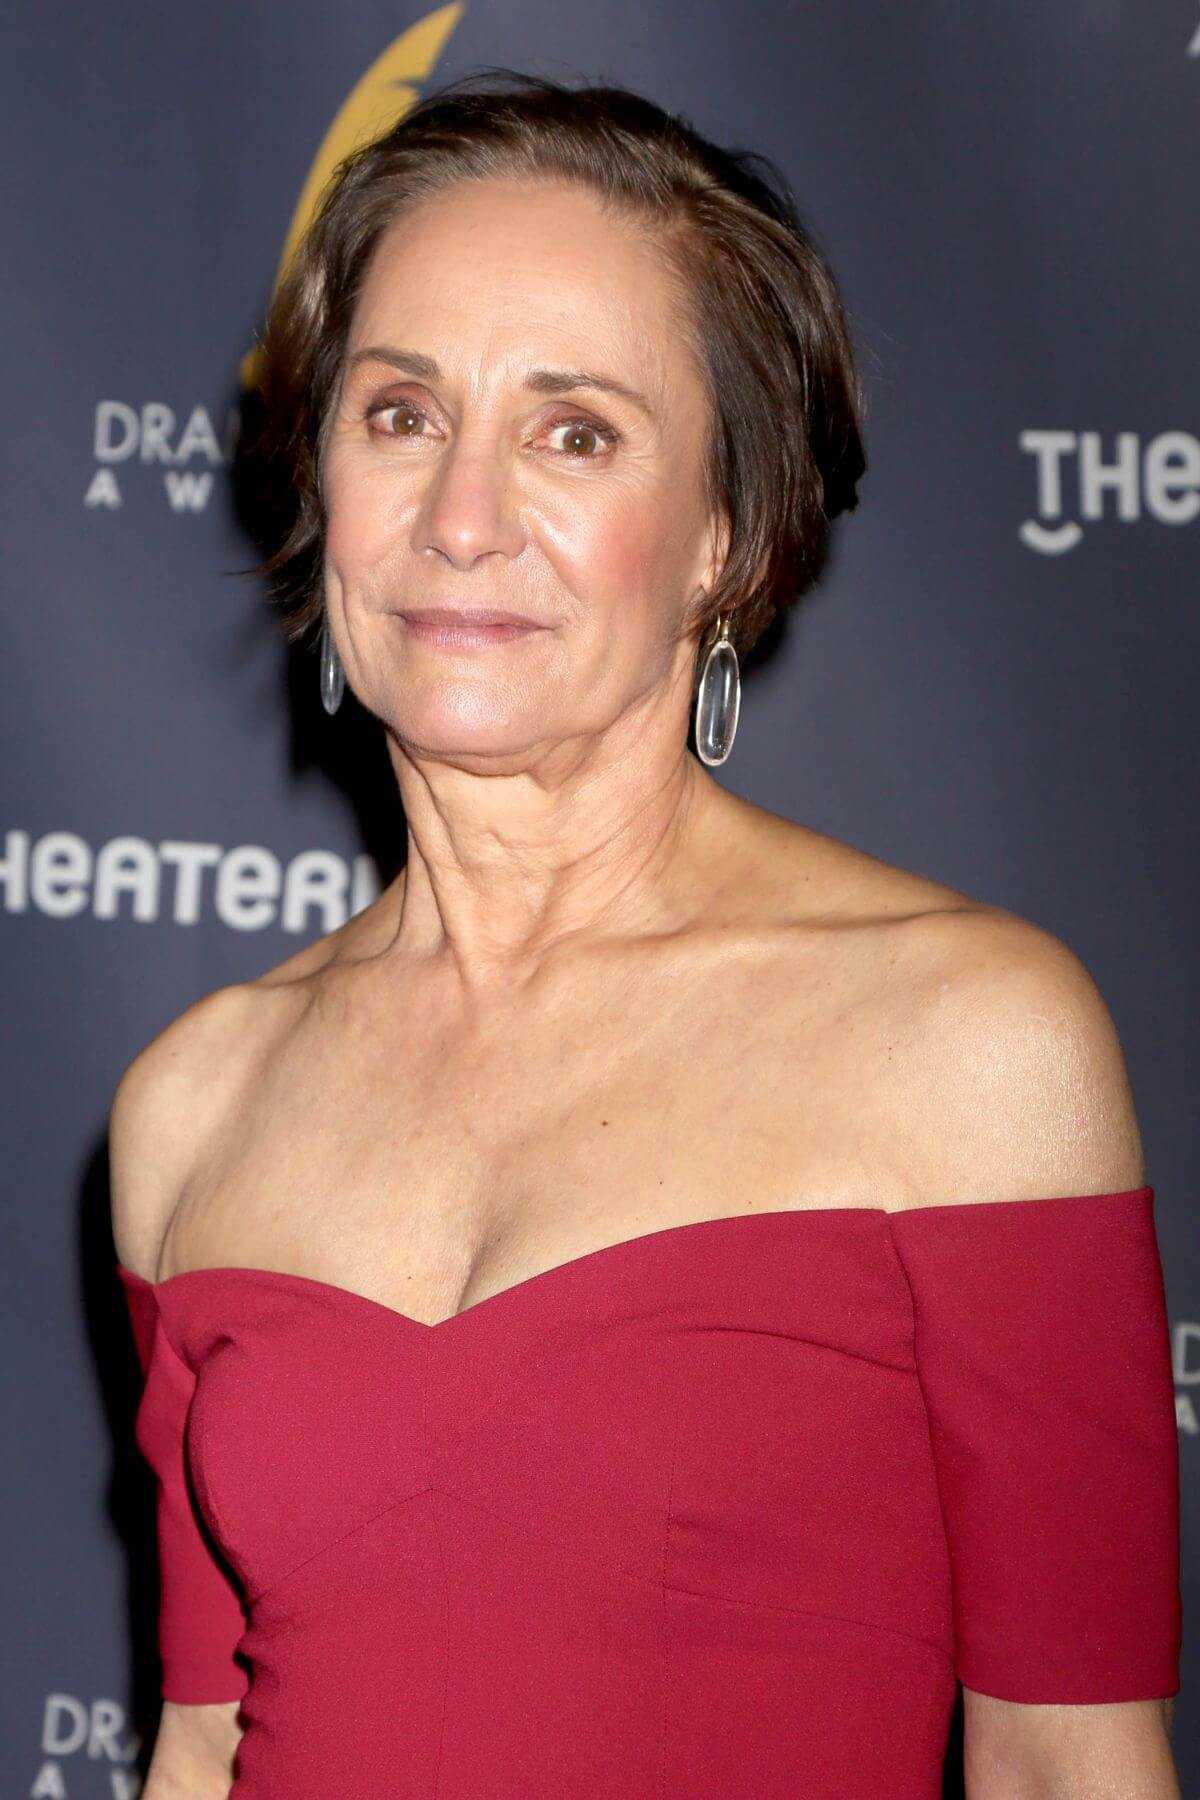 Laurie Metcalf Tits photo 12